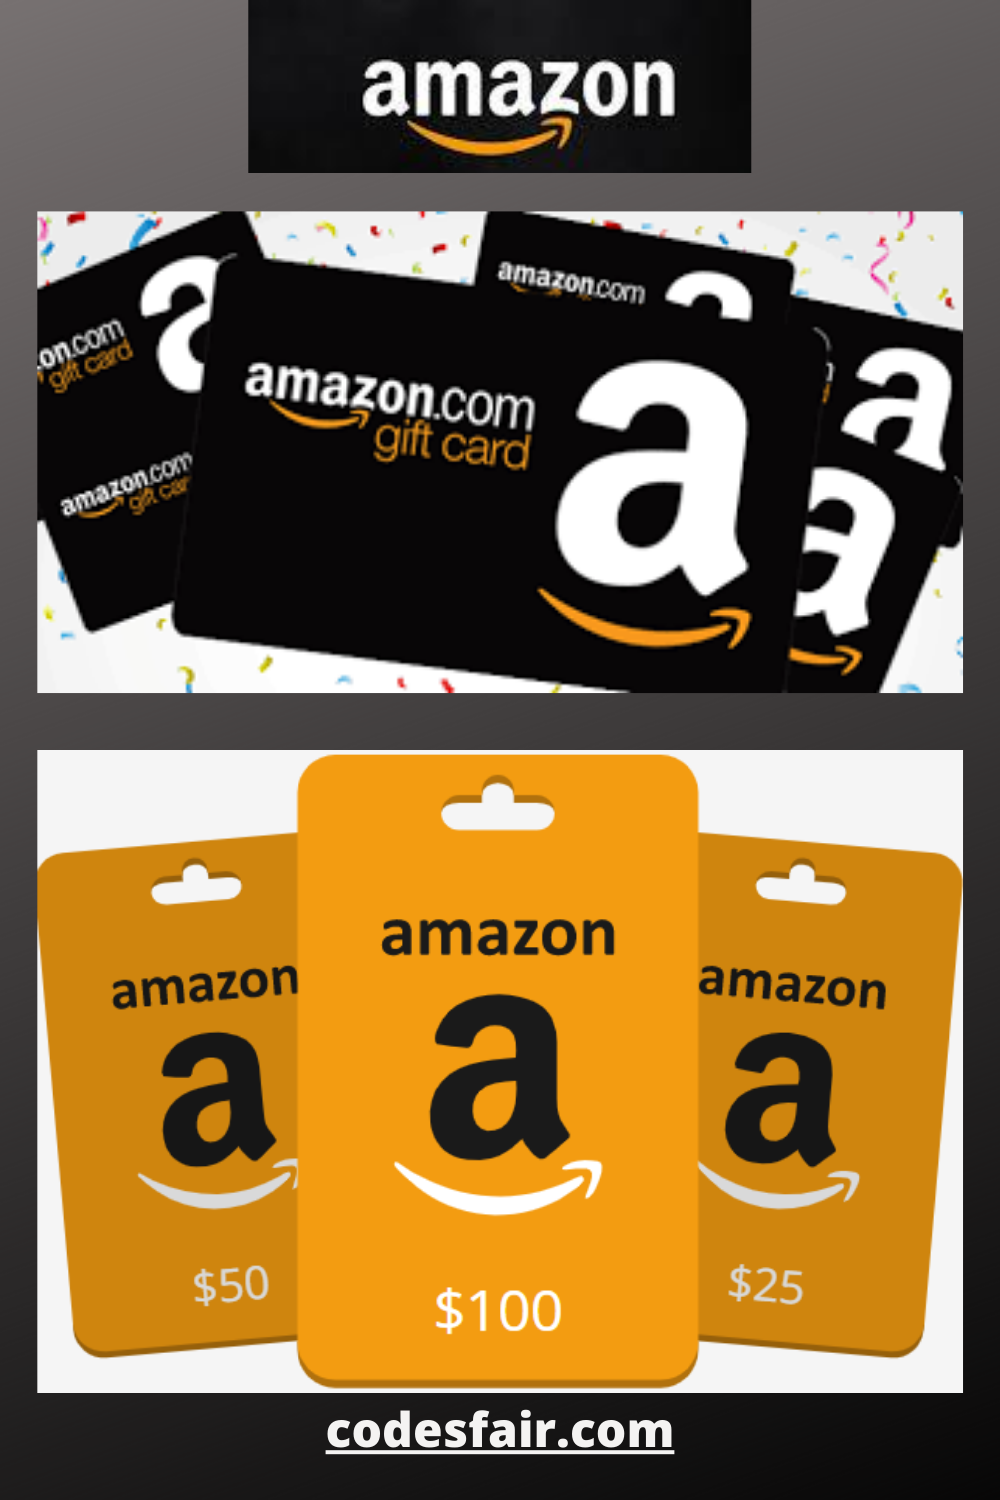 Amazon Gift Cards Giveaway How Do You Get Amazon Gift Card Amazon Gift Card Free Amazon Gift Cards Amazon Gifts